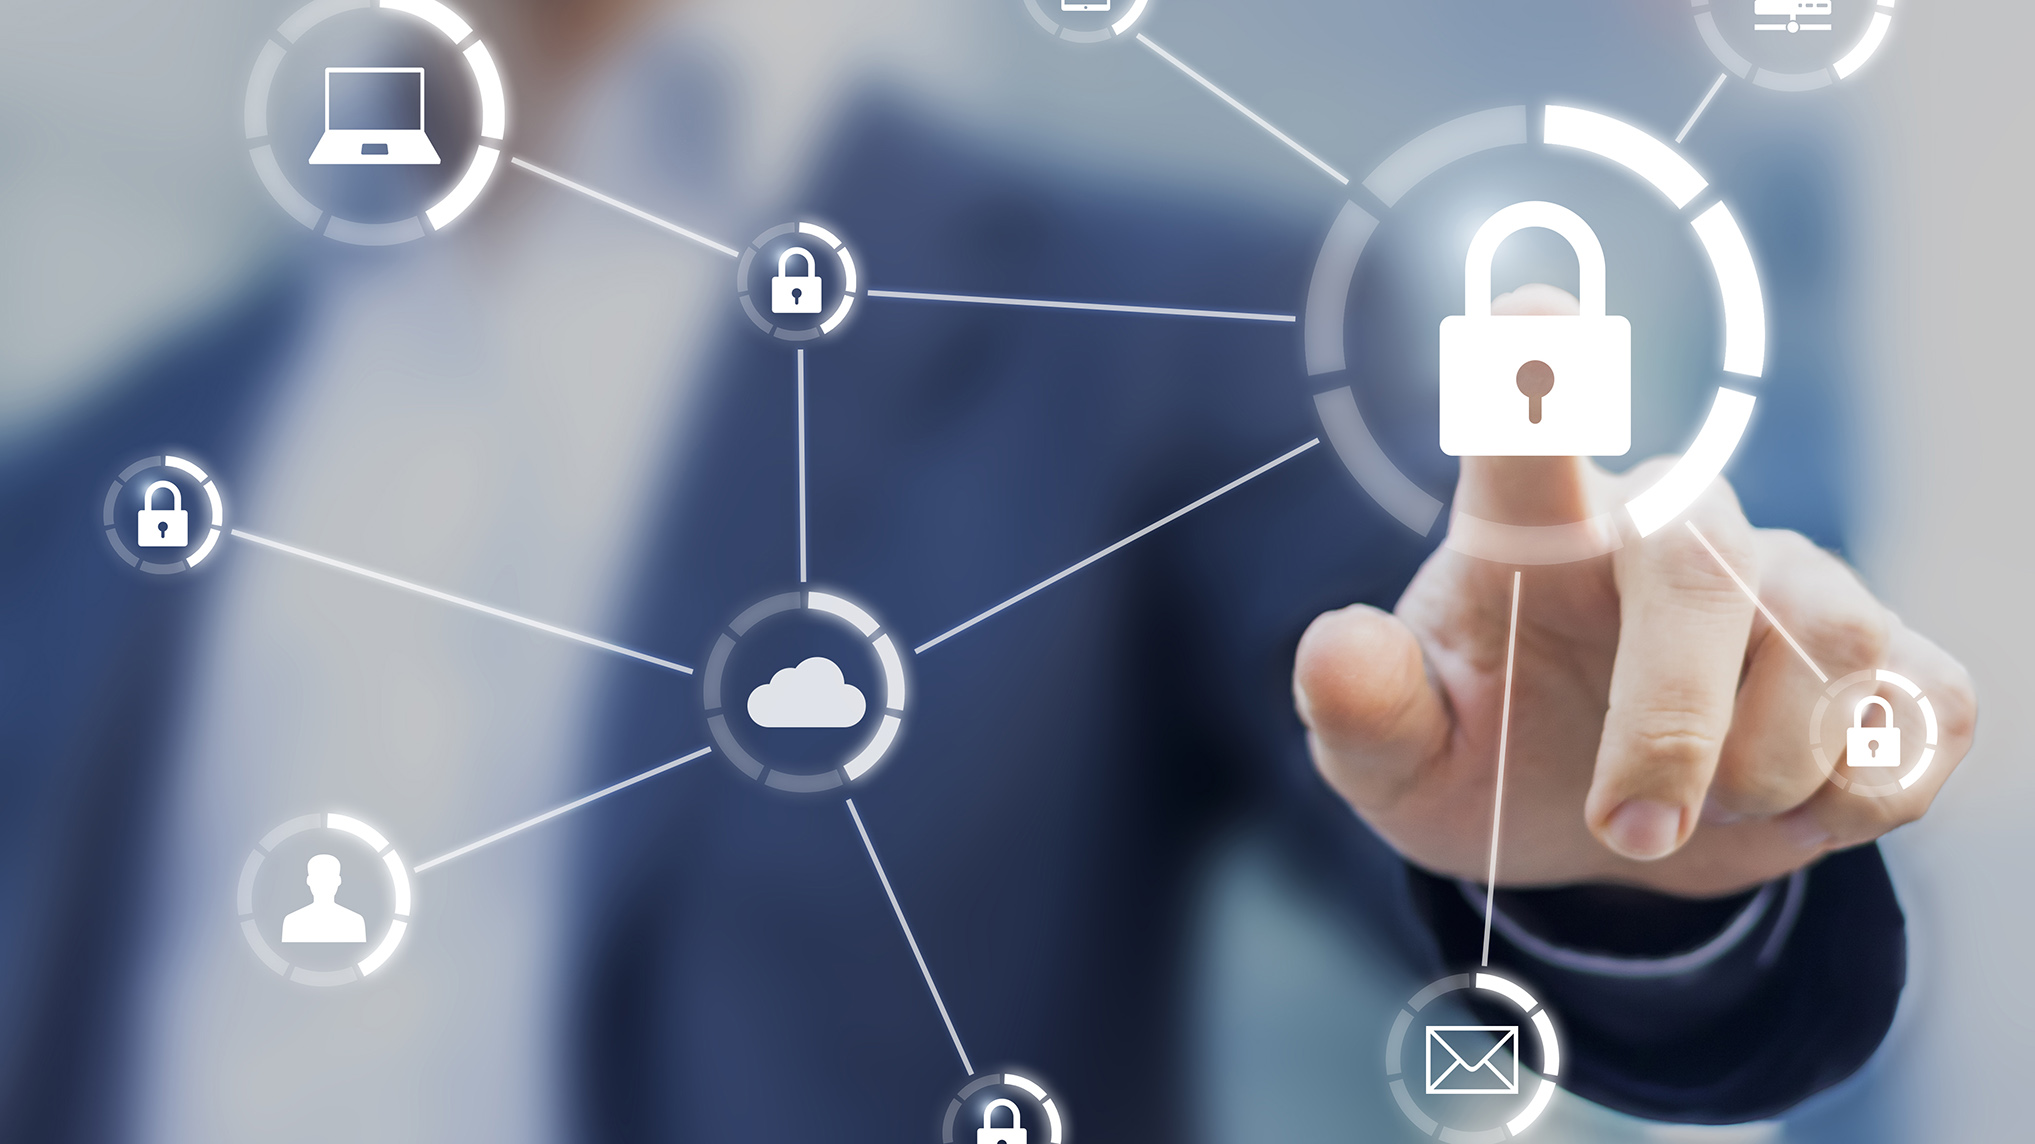 Managing IoT security through the endpoint, network, and cloud